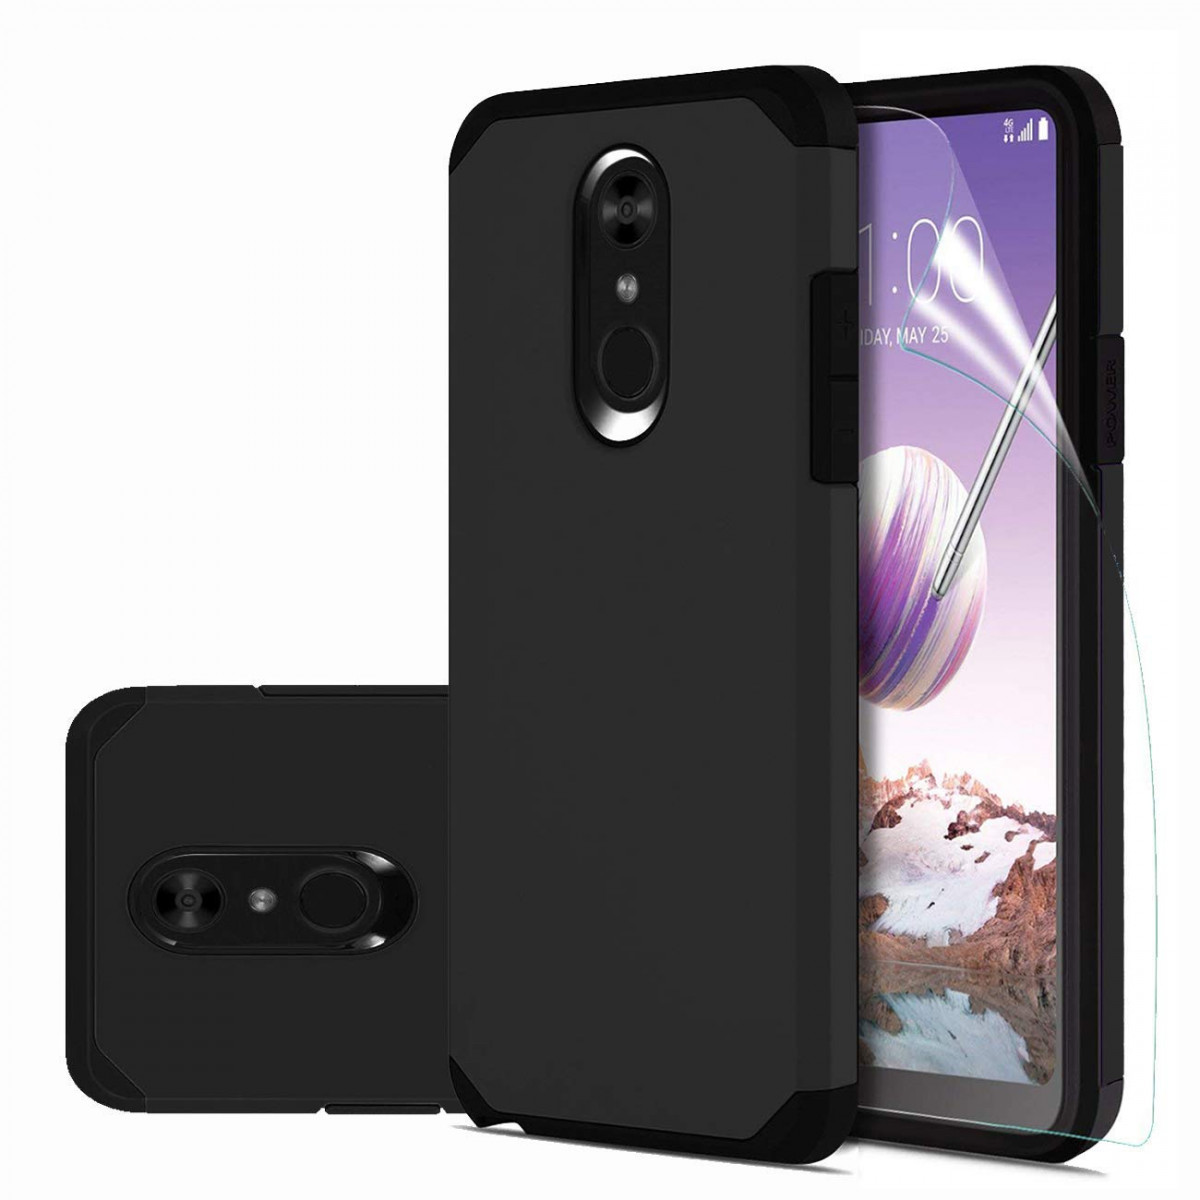 official photos 3f2df 23d61 LG Stylo 4 Case,LG Q Stylus/LG Q Stylus Plus/LG Stylus 4/LG Stylus 4 Plus  Case with HD Screen Protector,Slinco Dual Layer Hybrid Shock Proof ...